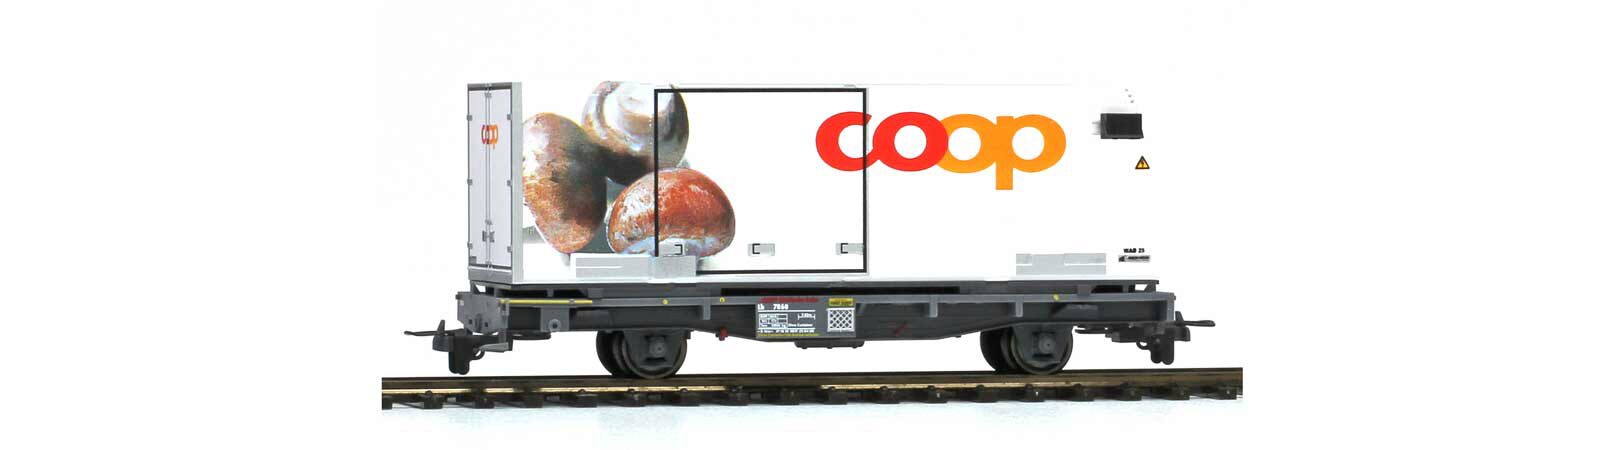 "Bemo 2269110 RhB Lb-v 7860 mit Coop-Container ""Champignons"""